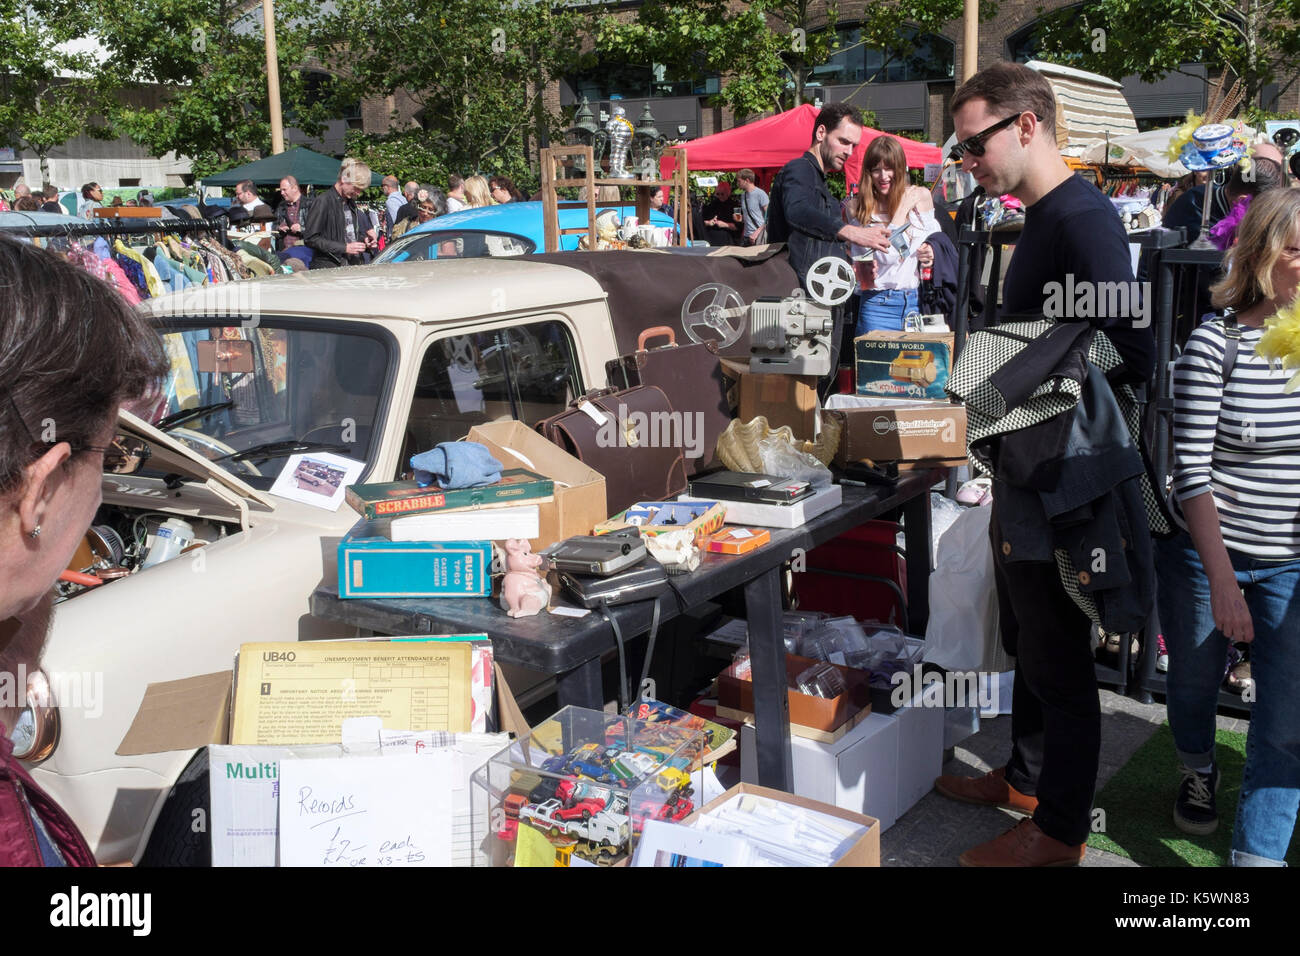 King's Cross classic car boot sale. Vintage fashion, homeware and accessories on sale alongside classic motor vehicles, King's Cross, London, UK - Stock Image